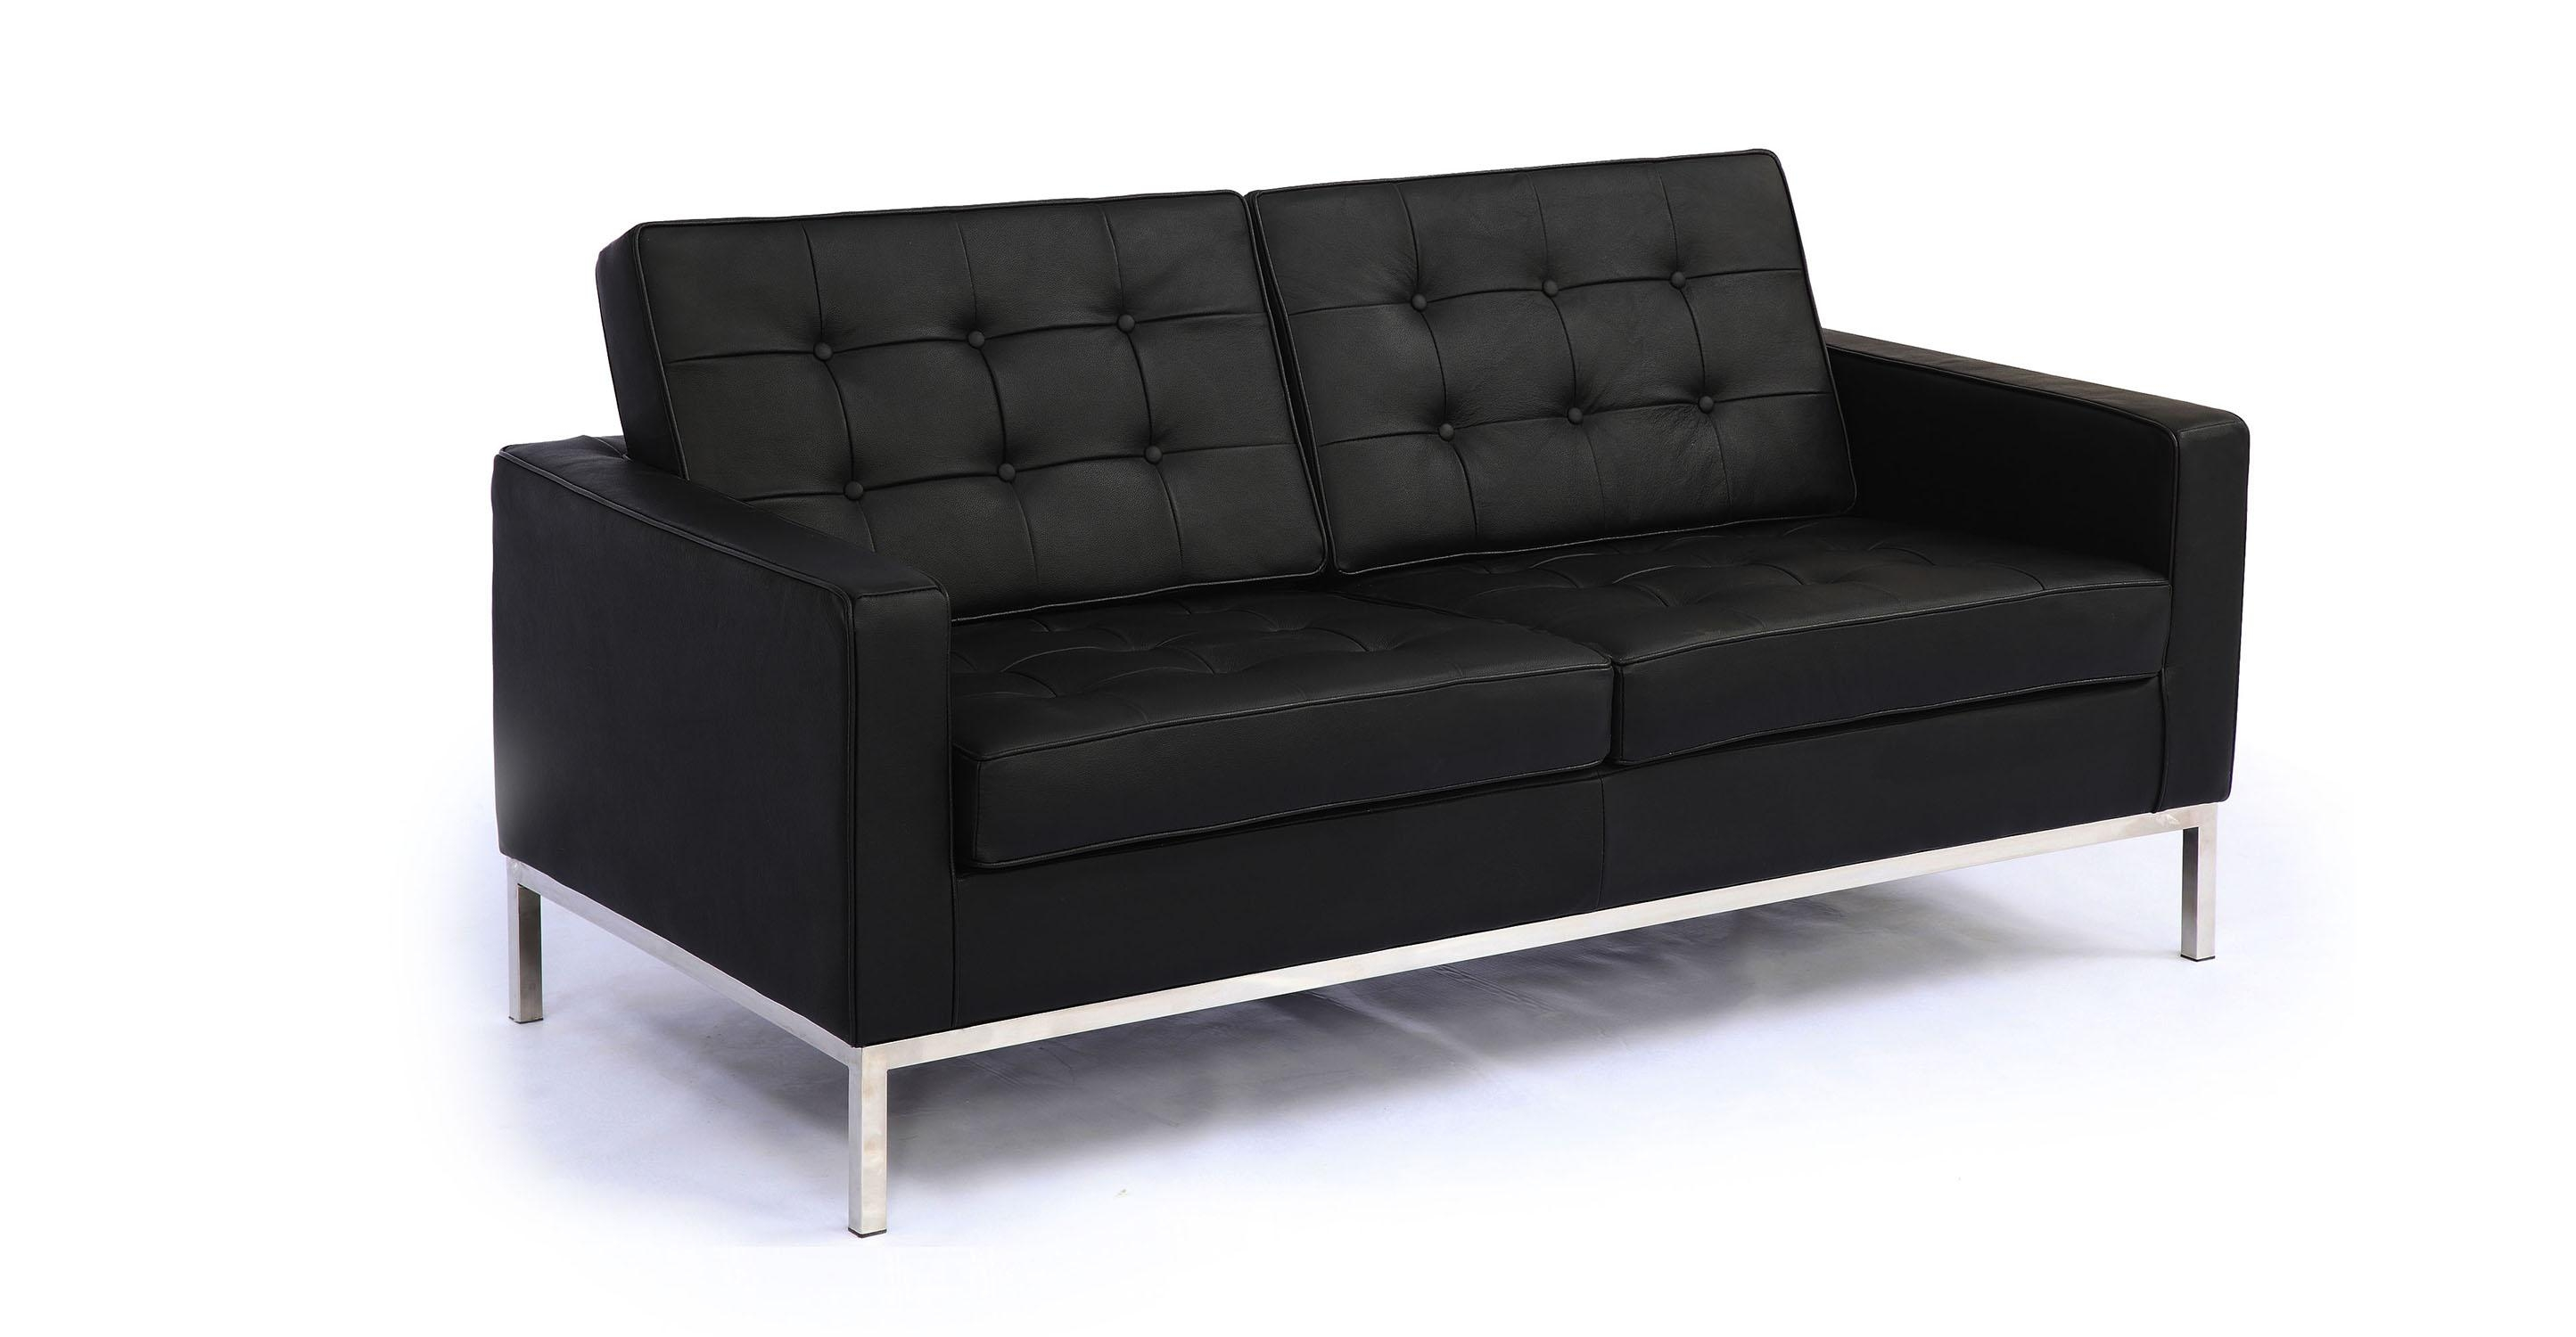 16 Florence Leather Sofa | Carehouse regarding Florence Leather Sofas